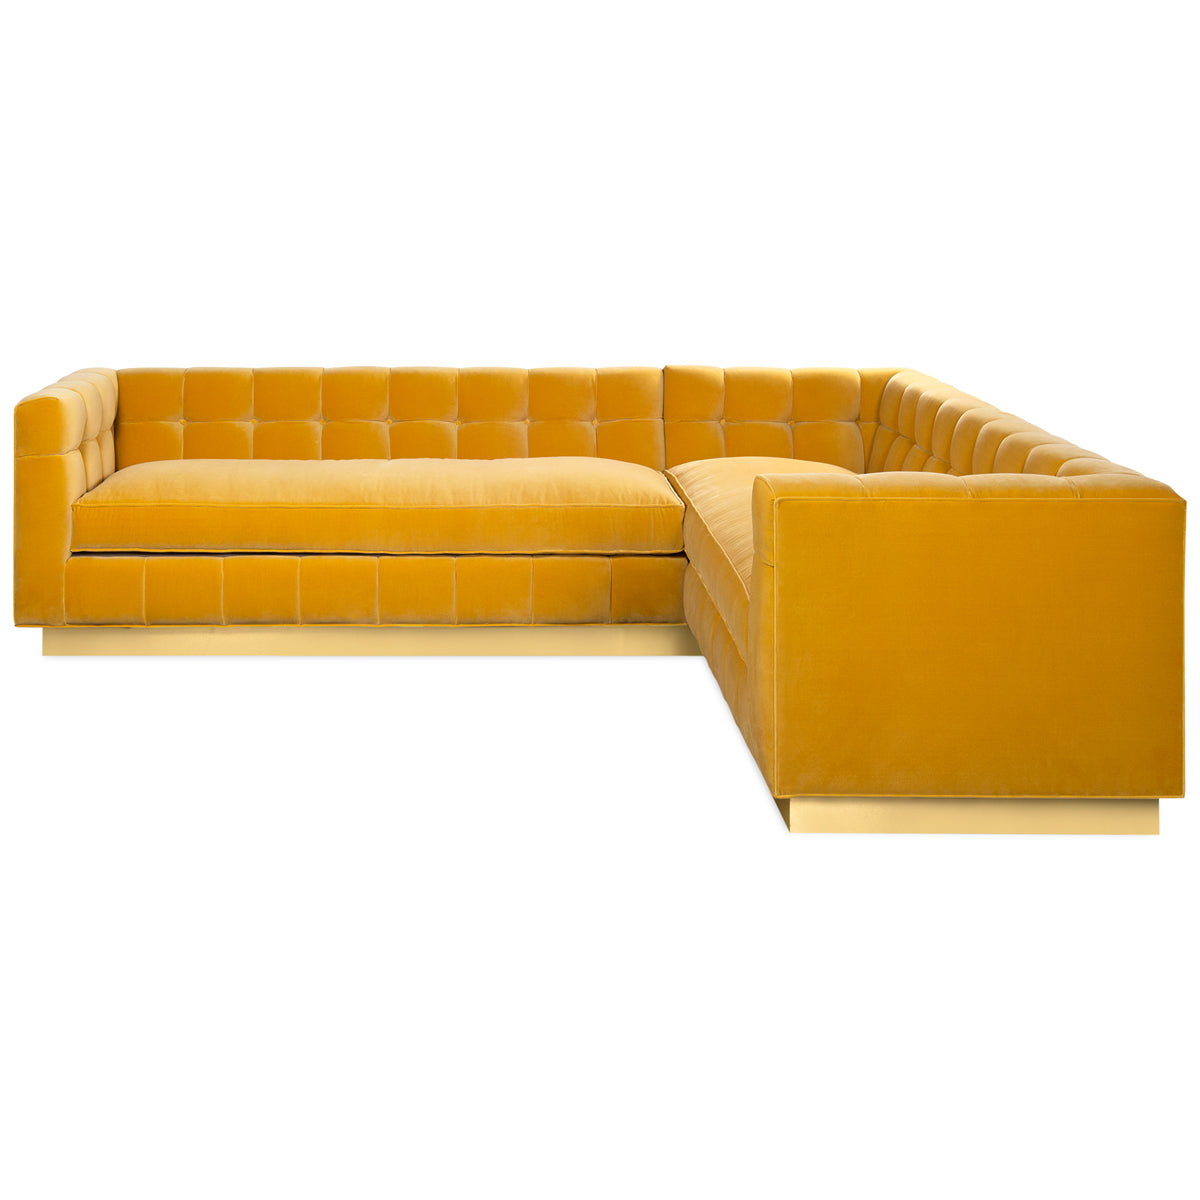 Delano Sectional with Loose Seat Cushions